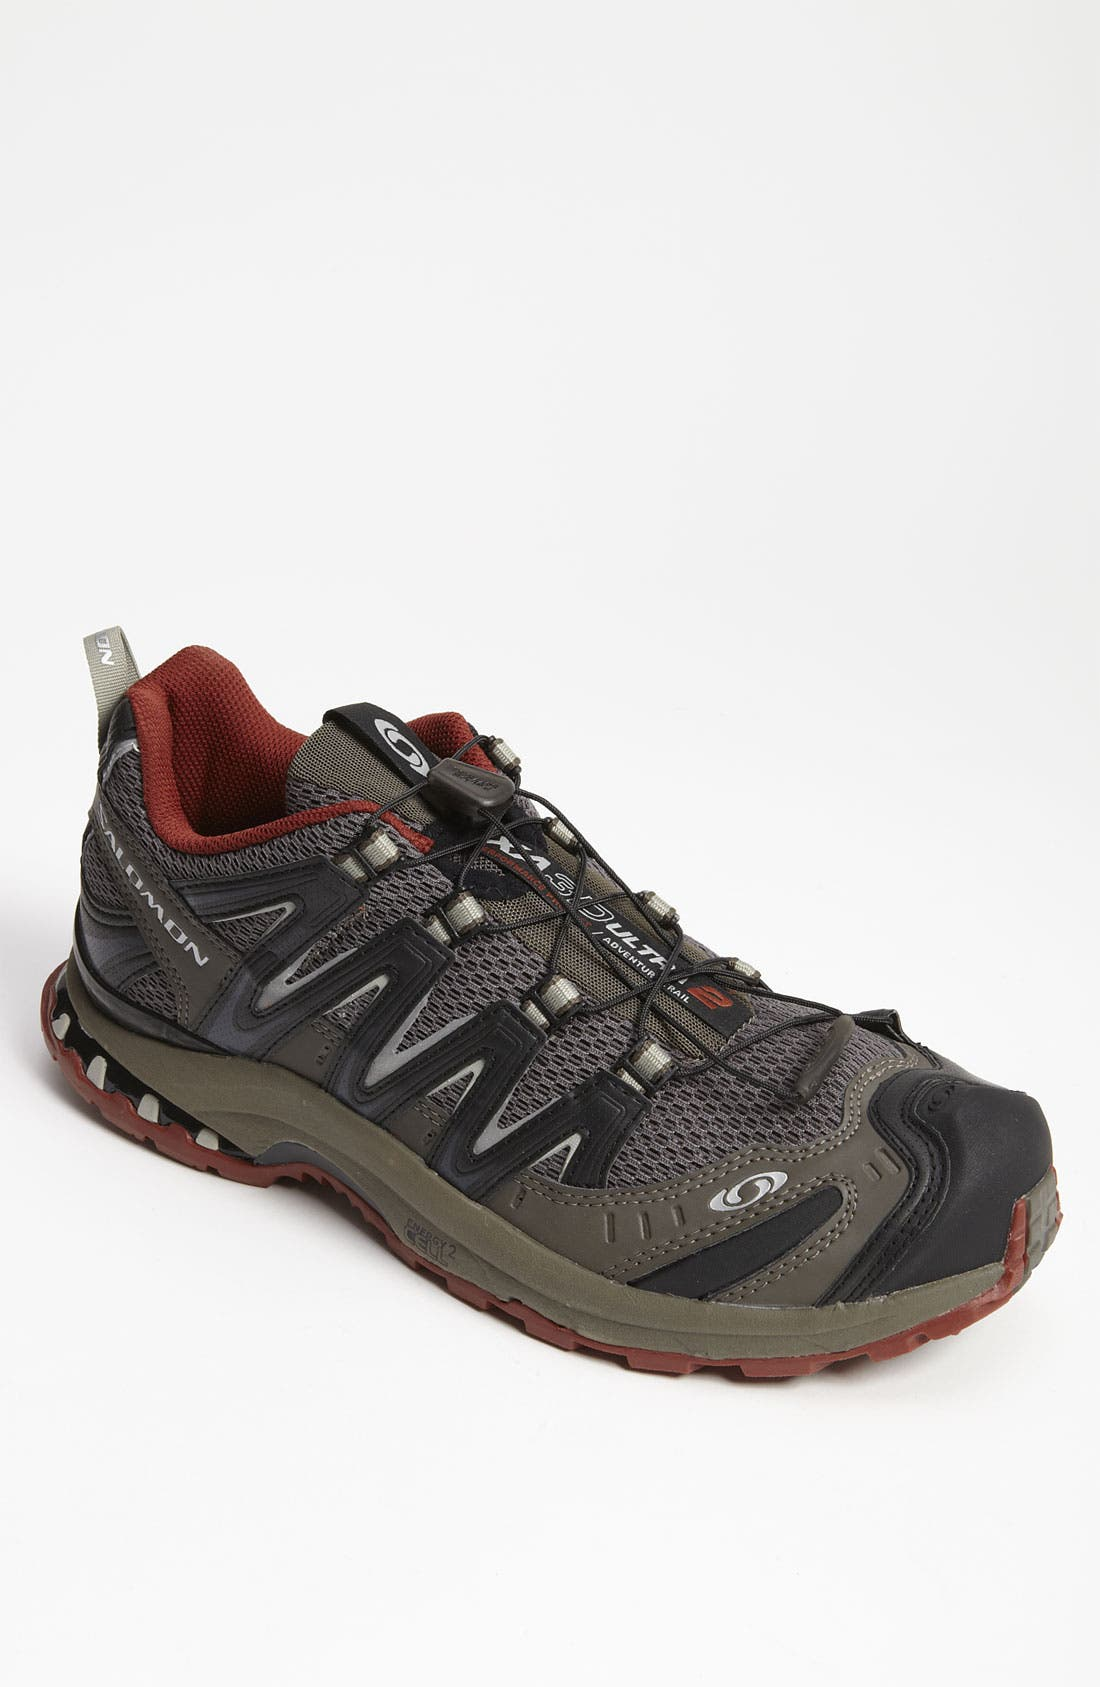 Main Image - Salomon 'XA Pro 3D' Running Shoe (Men)